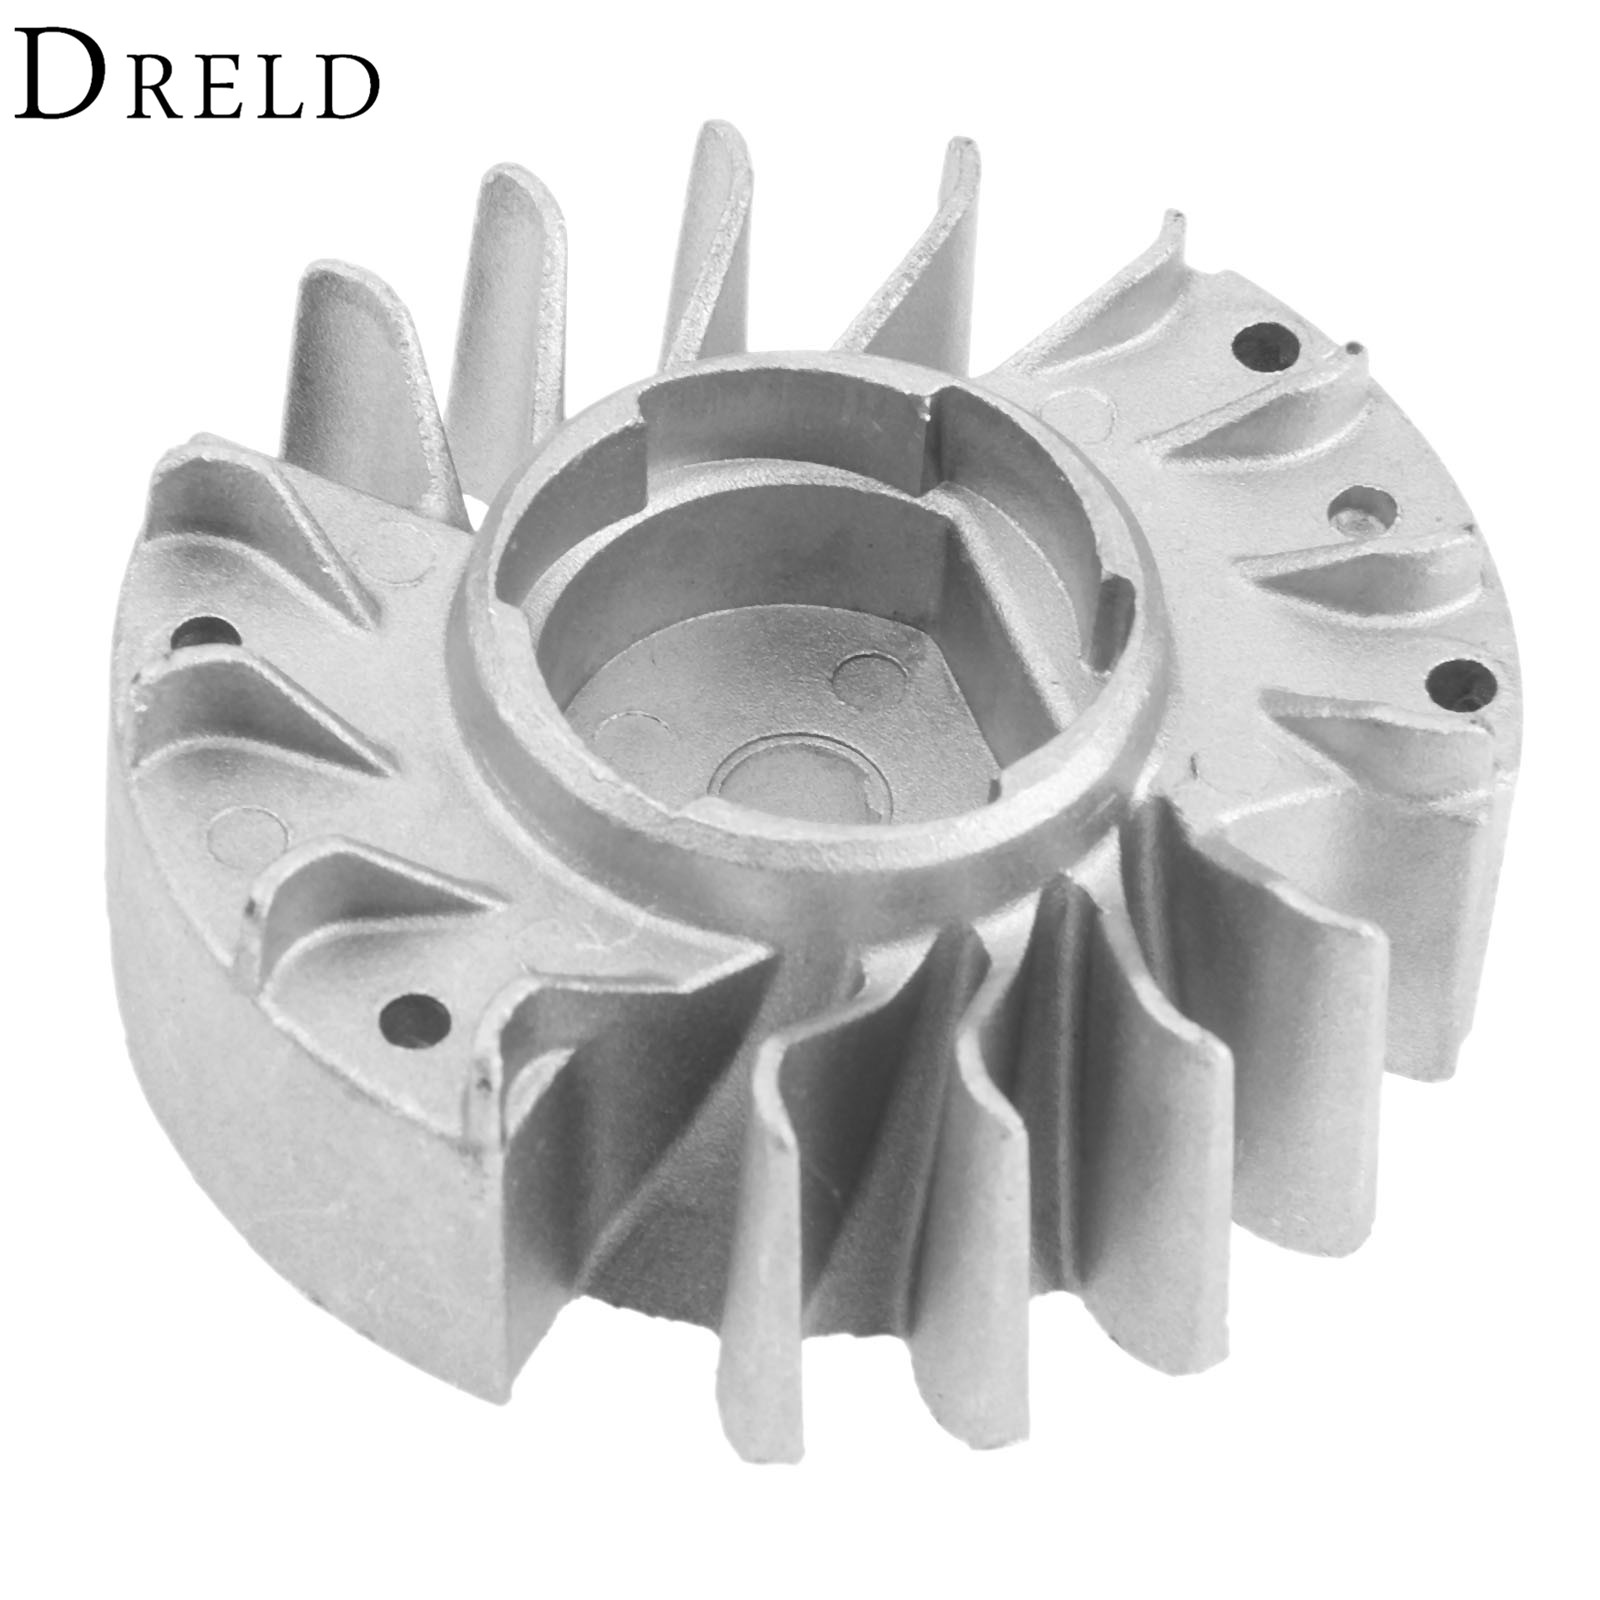 DRELD Fly Wheel Garden Power Tools Flywheel For STIHL 017 018 MS170 MS180 Replace Chainsaws #1130 400 1201 Chain Saw